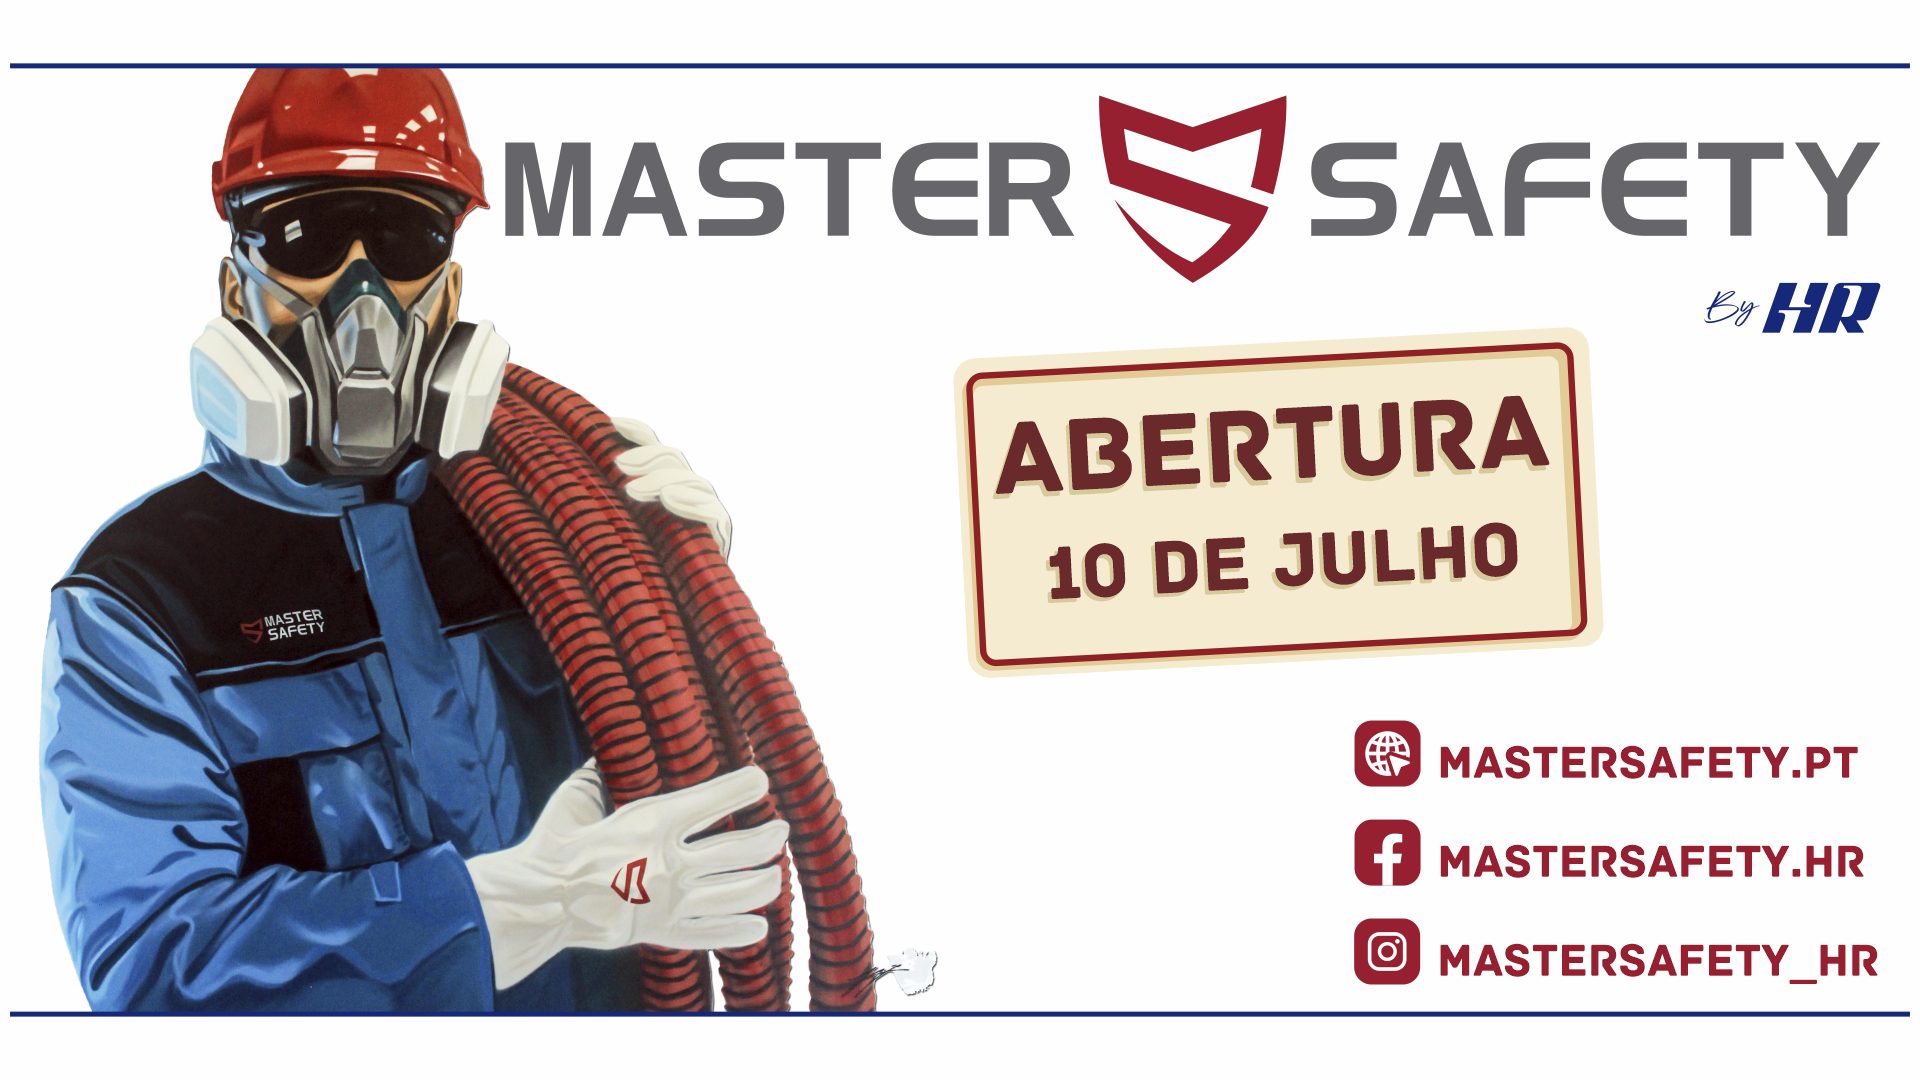 Master Safety by HR Group